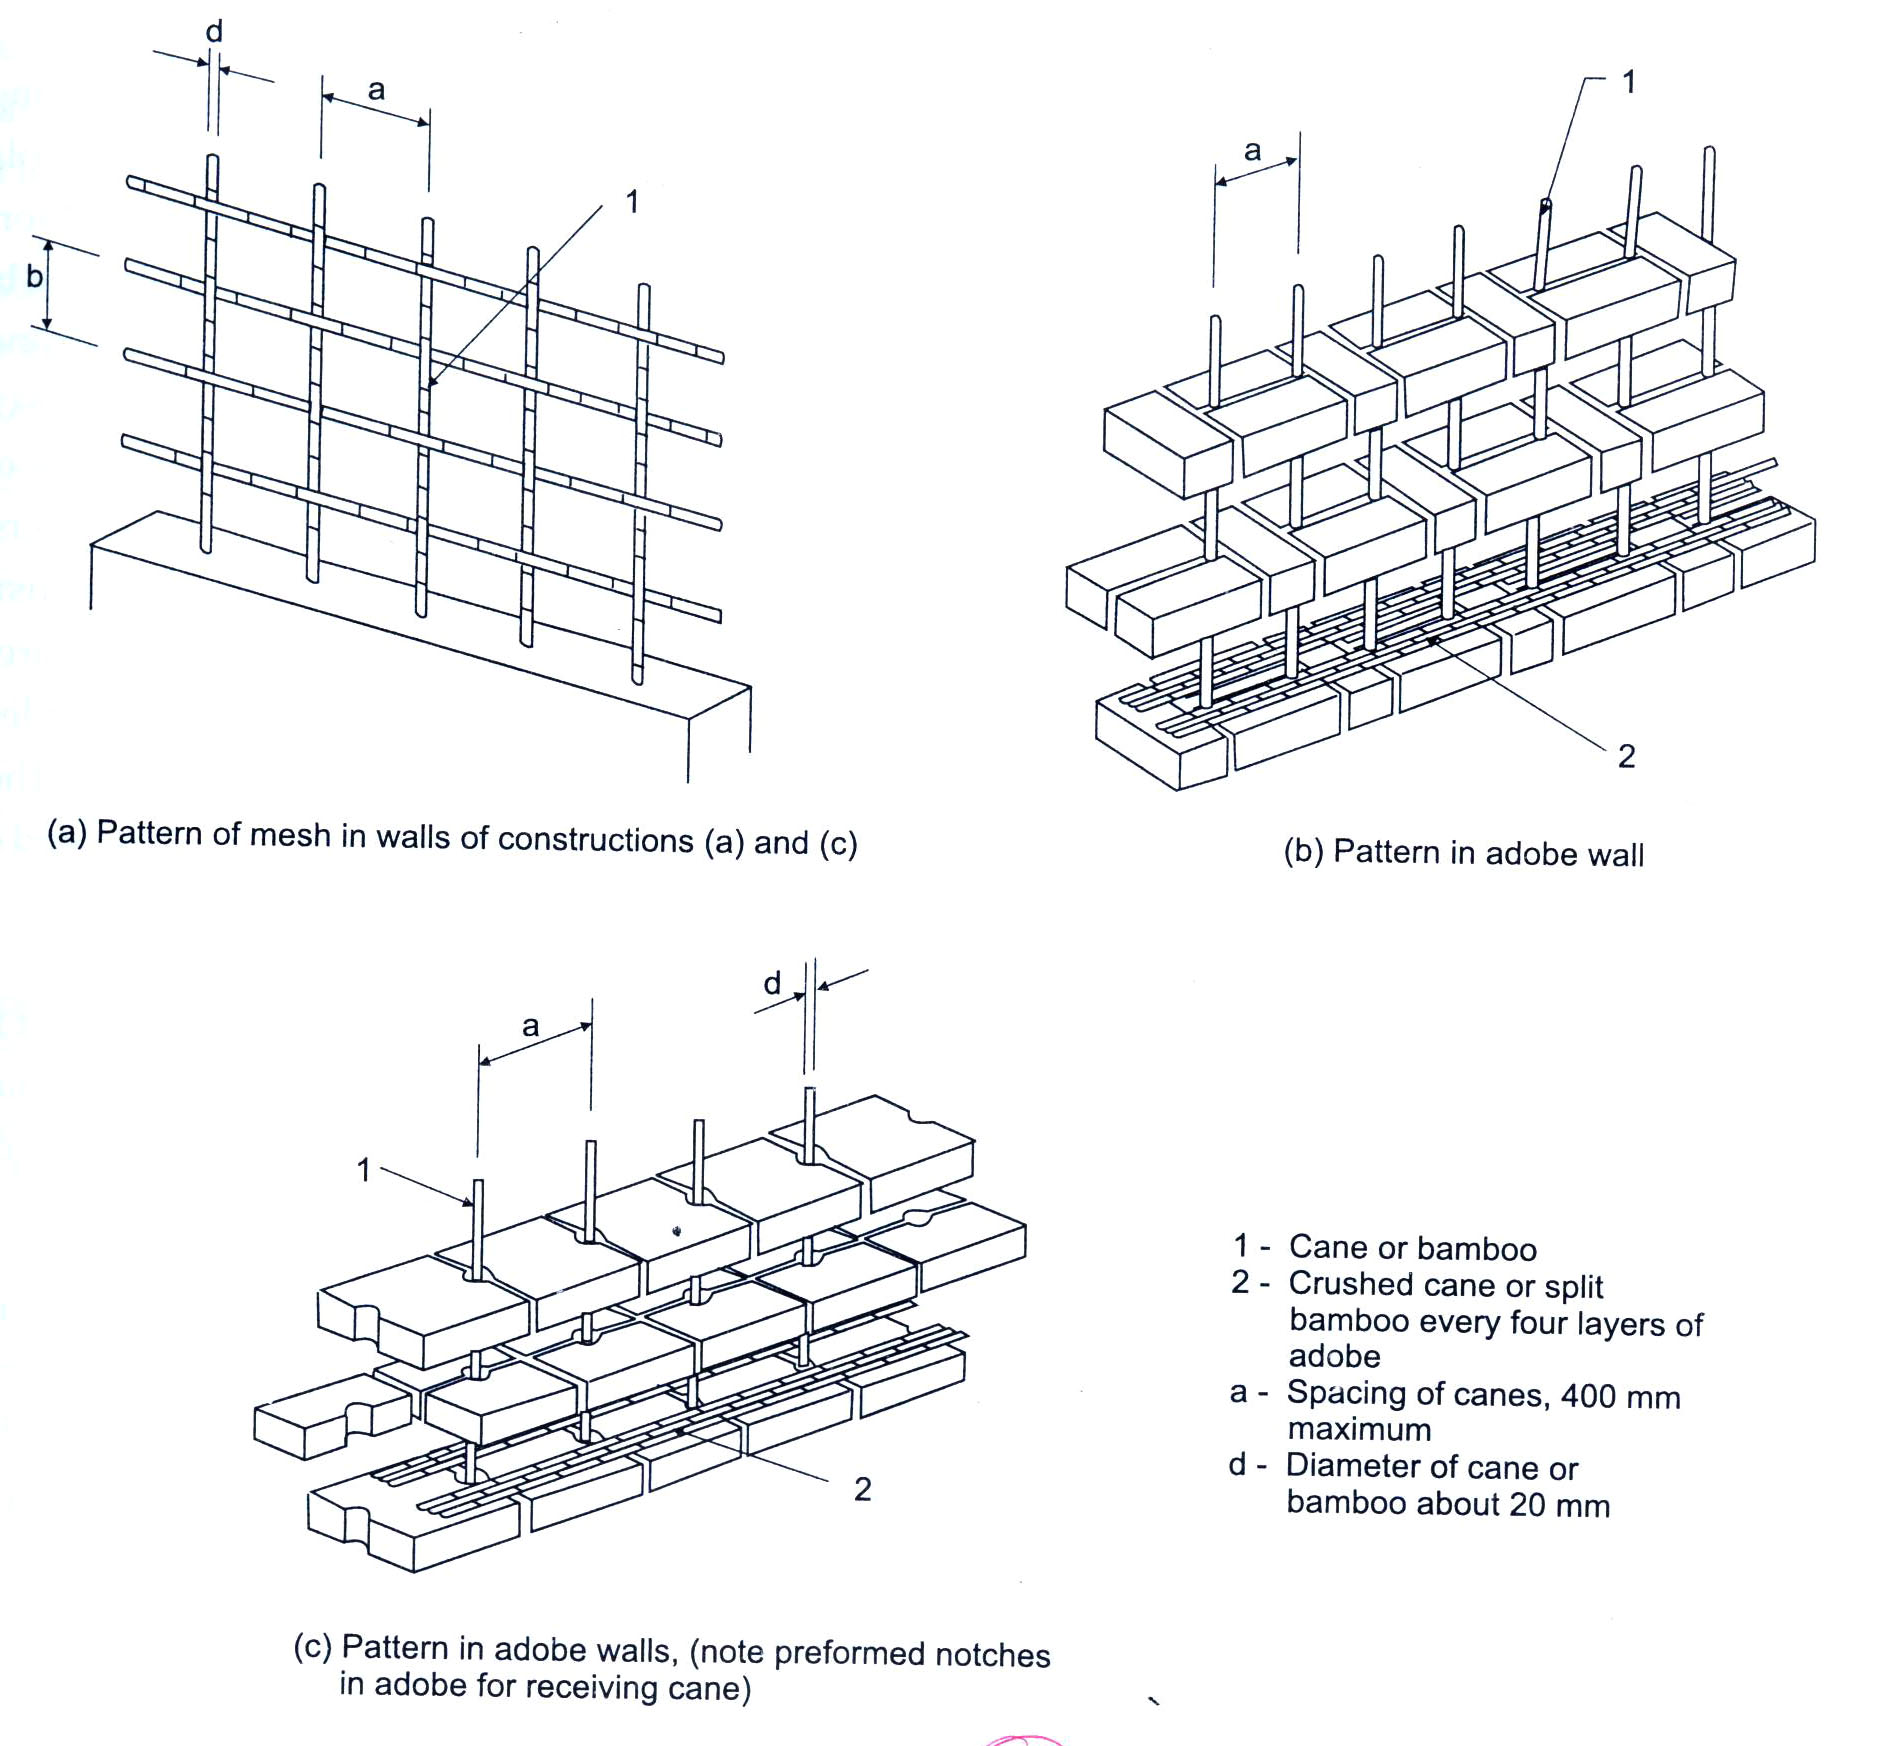 Bamboo reinforcing system. IAEE Guidelines, 2004, p.73.